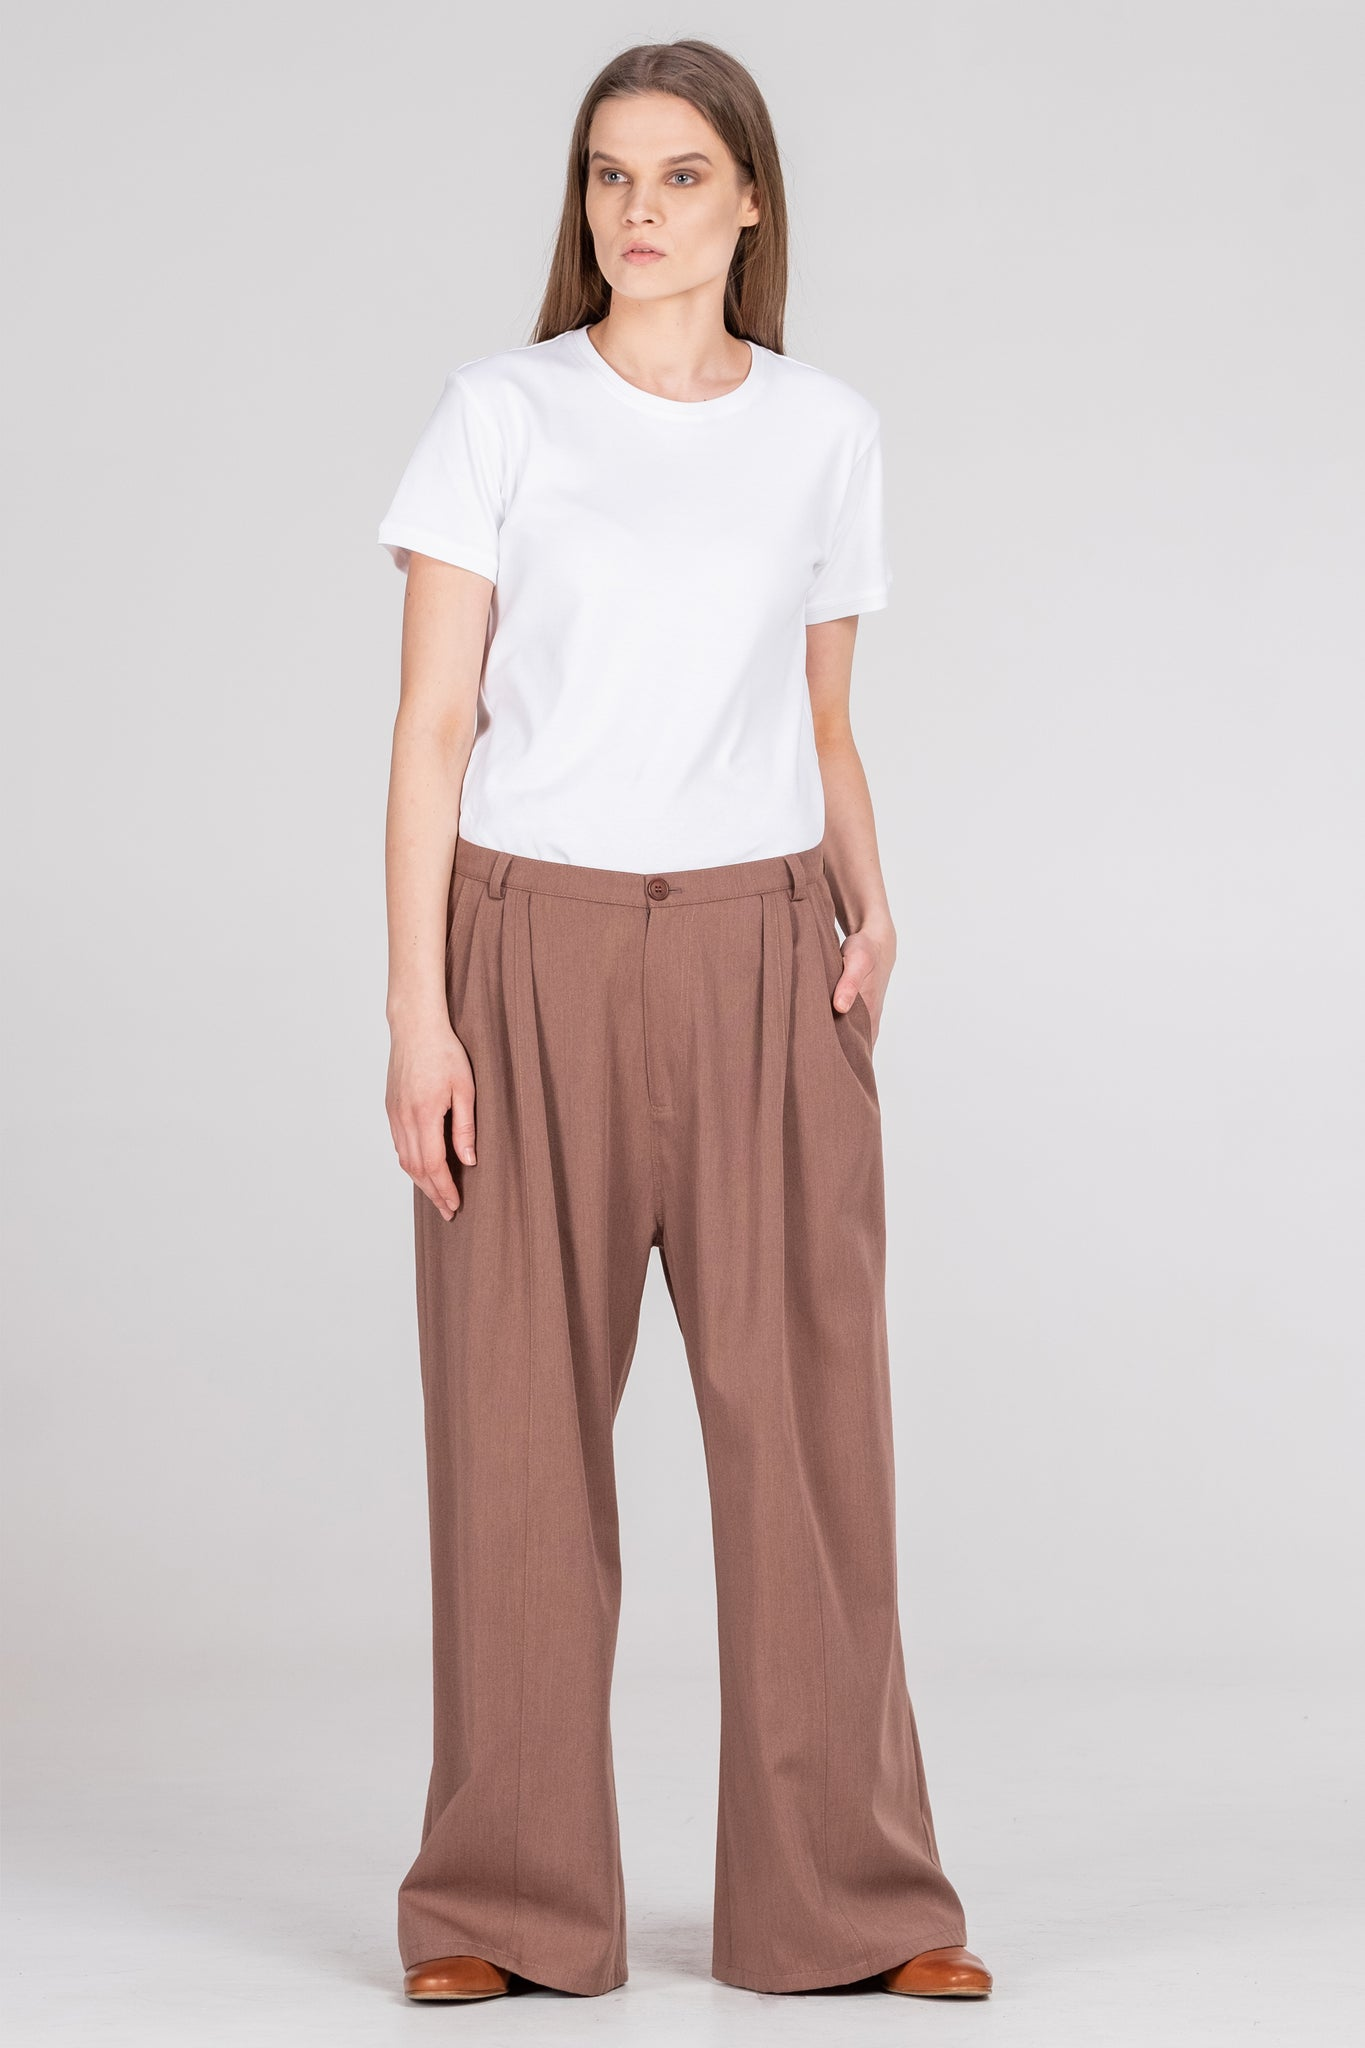 ABNORMAL classic pants russet - One Wolf